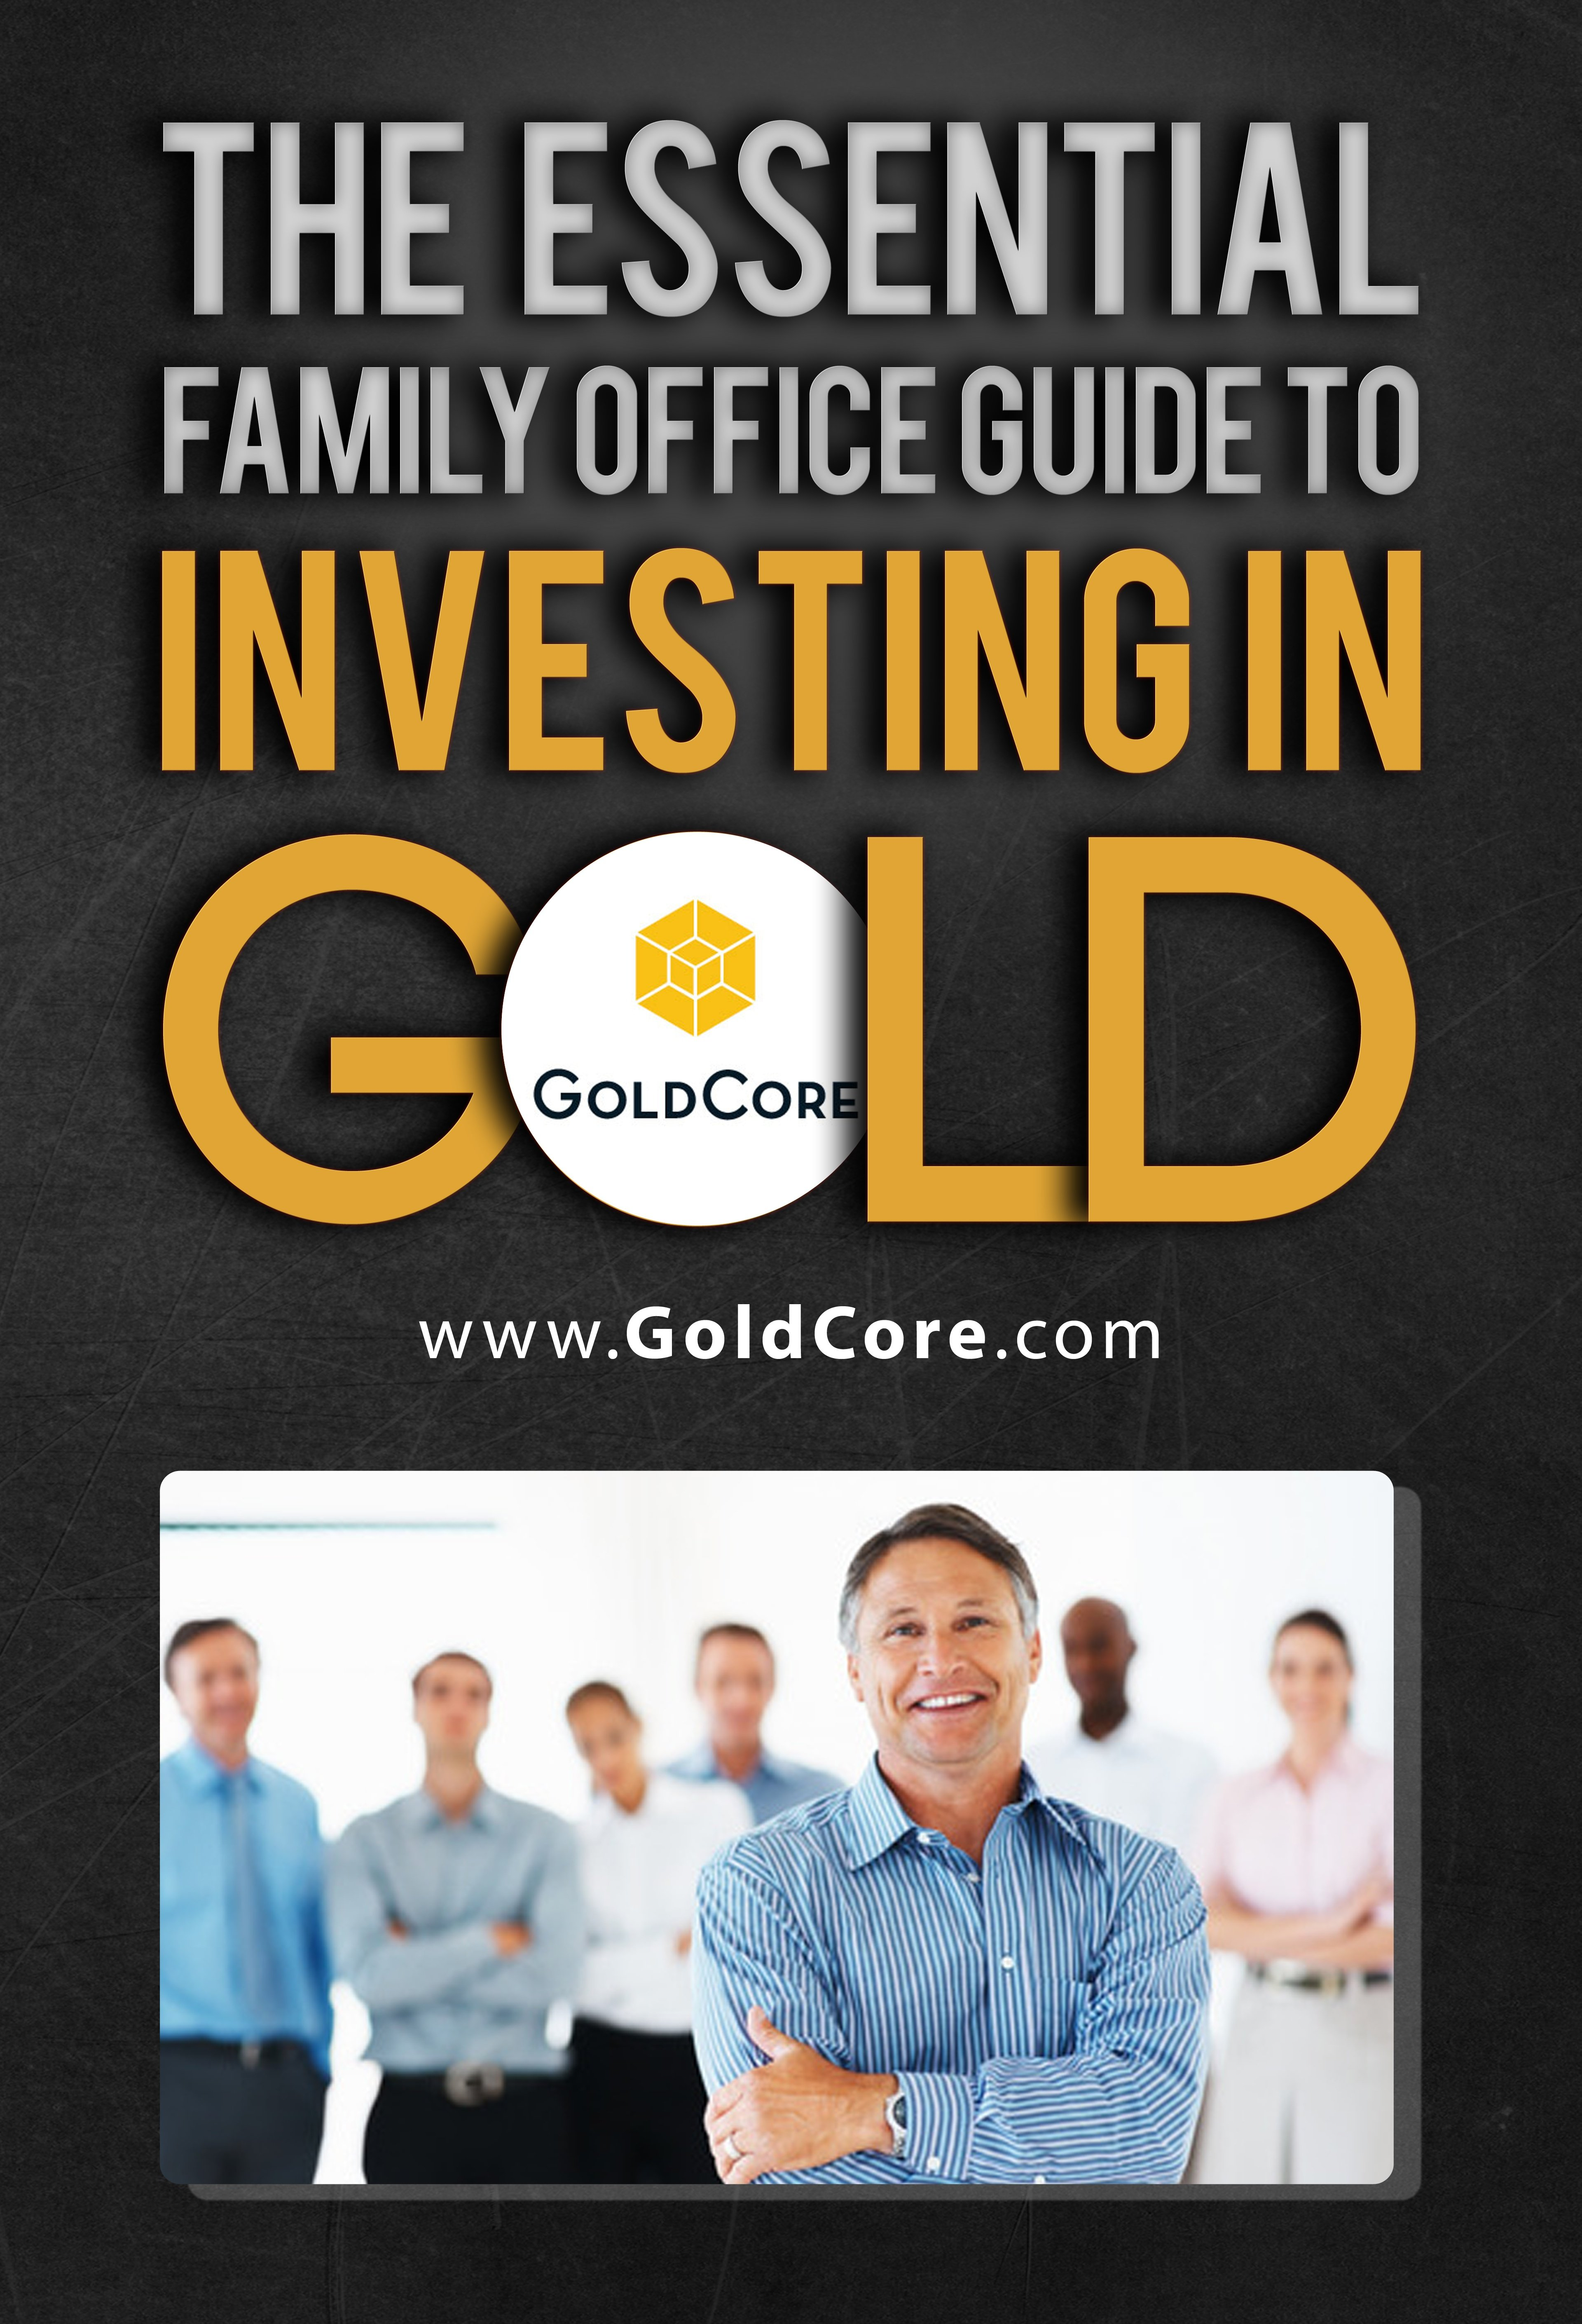 The_Essential_Family_Office_Guide_to_Investing_in_Gold_-_Copy.jpg